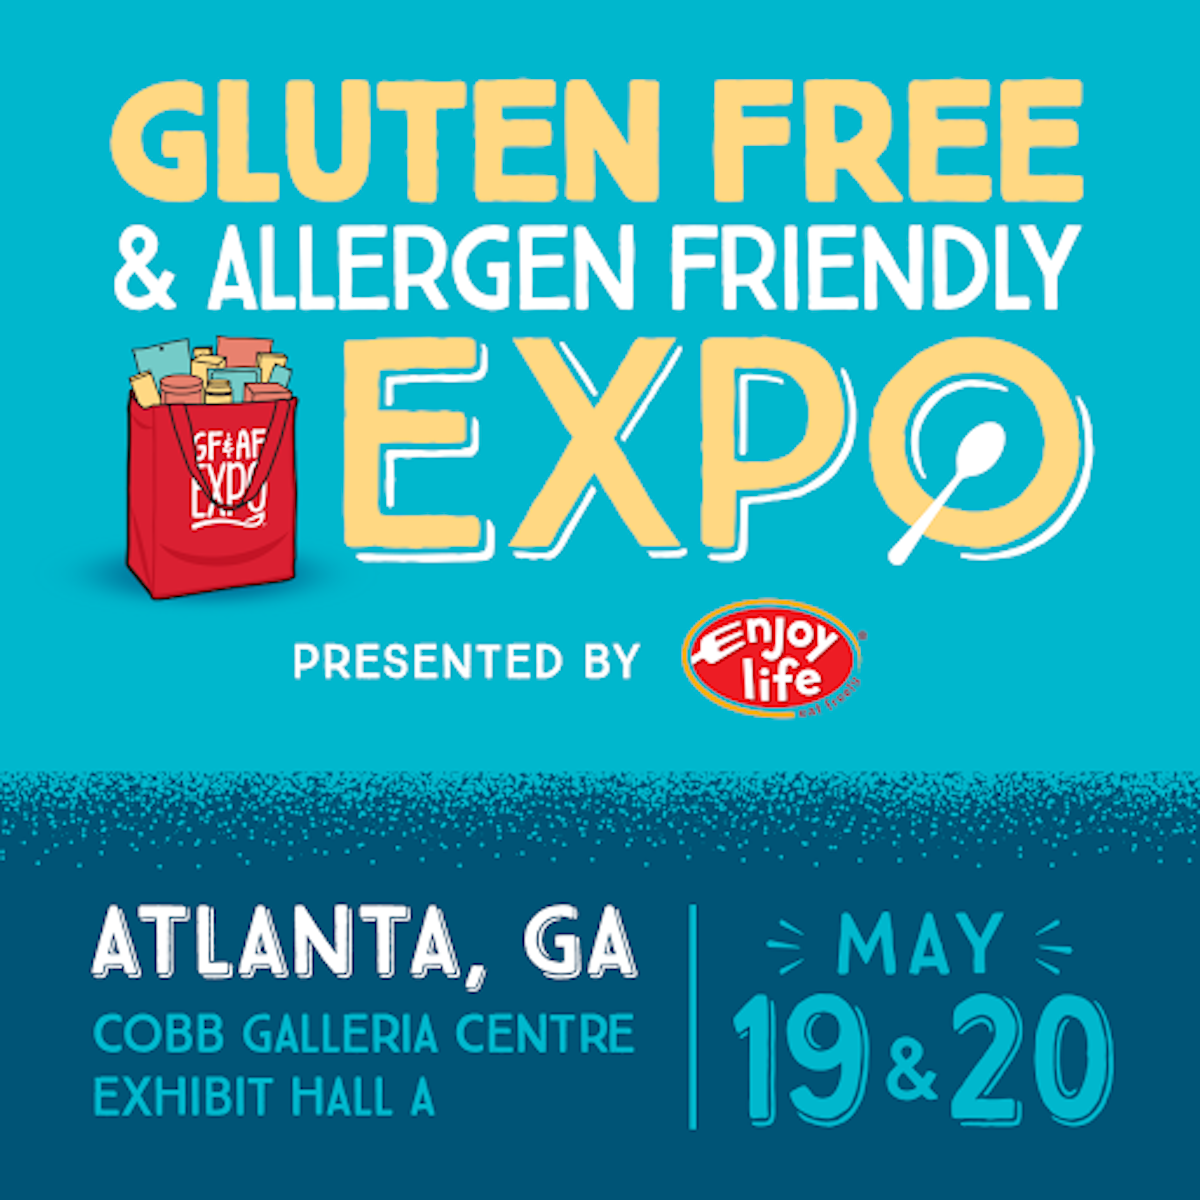 JOIN ME AT THE GLUTEN FREE & ALLERGY FRIENDLY EXPO 2018!